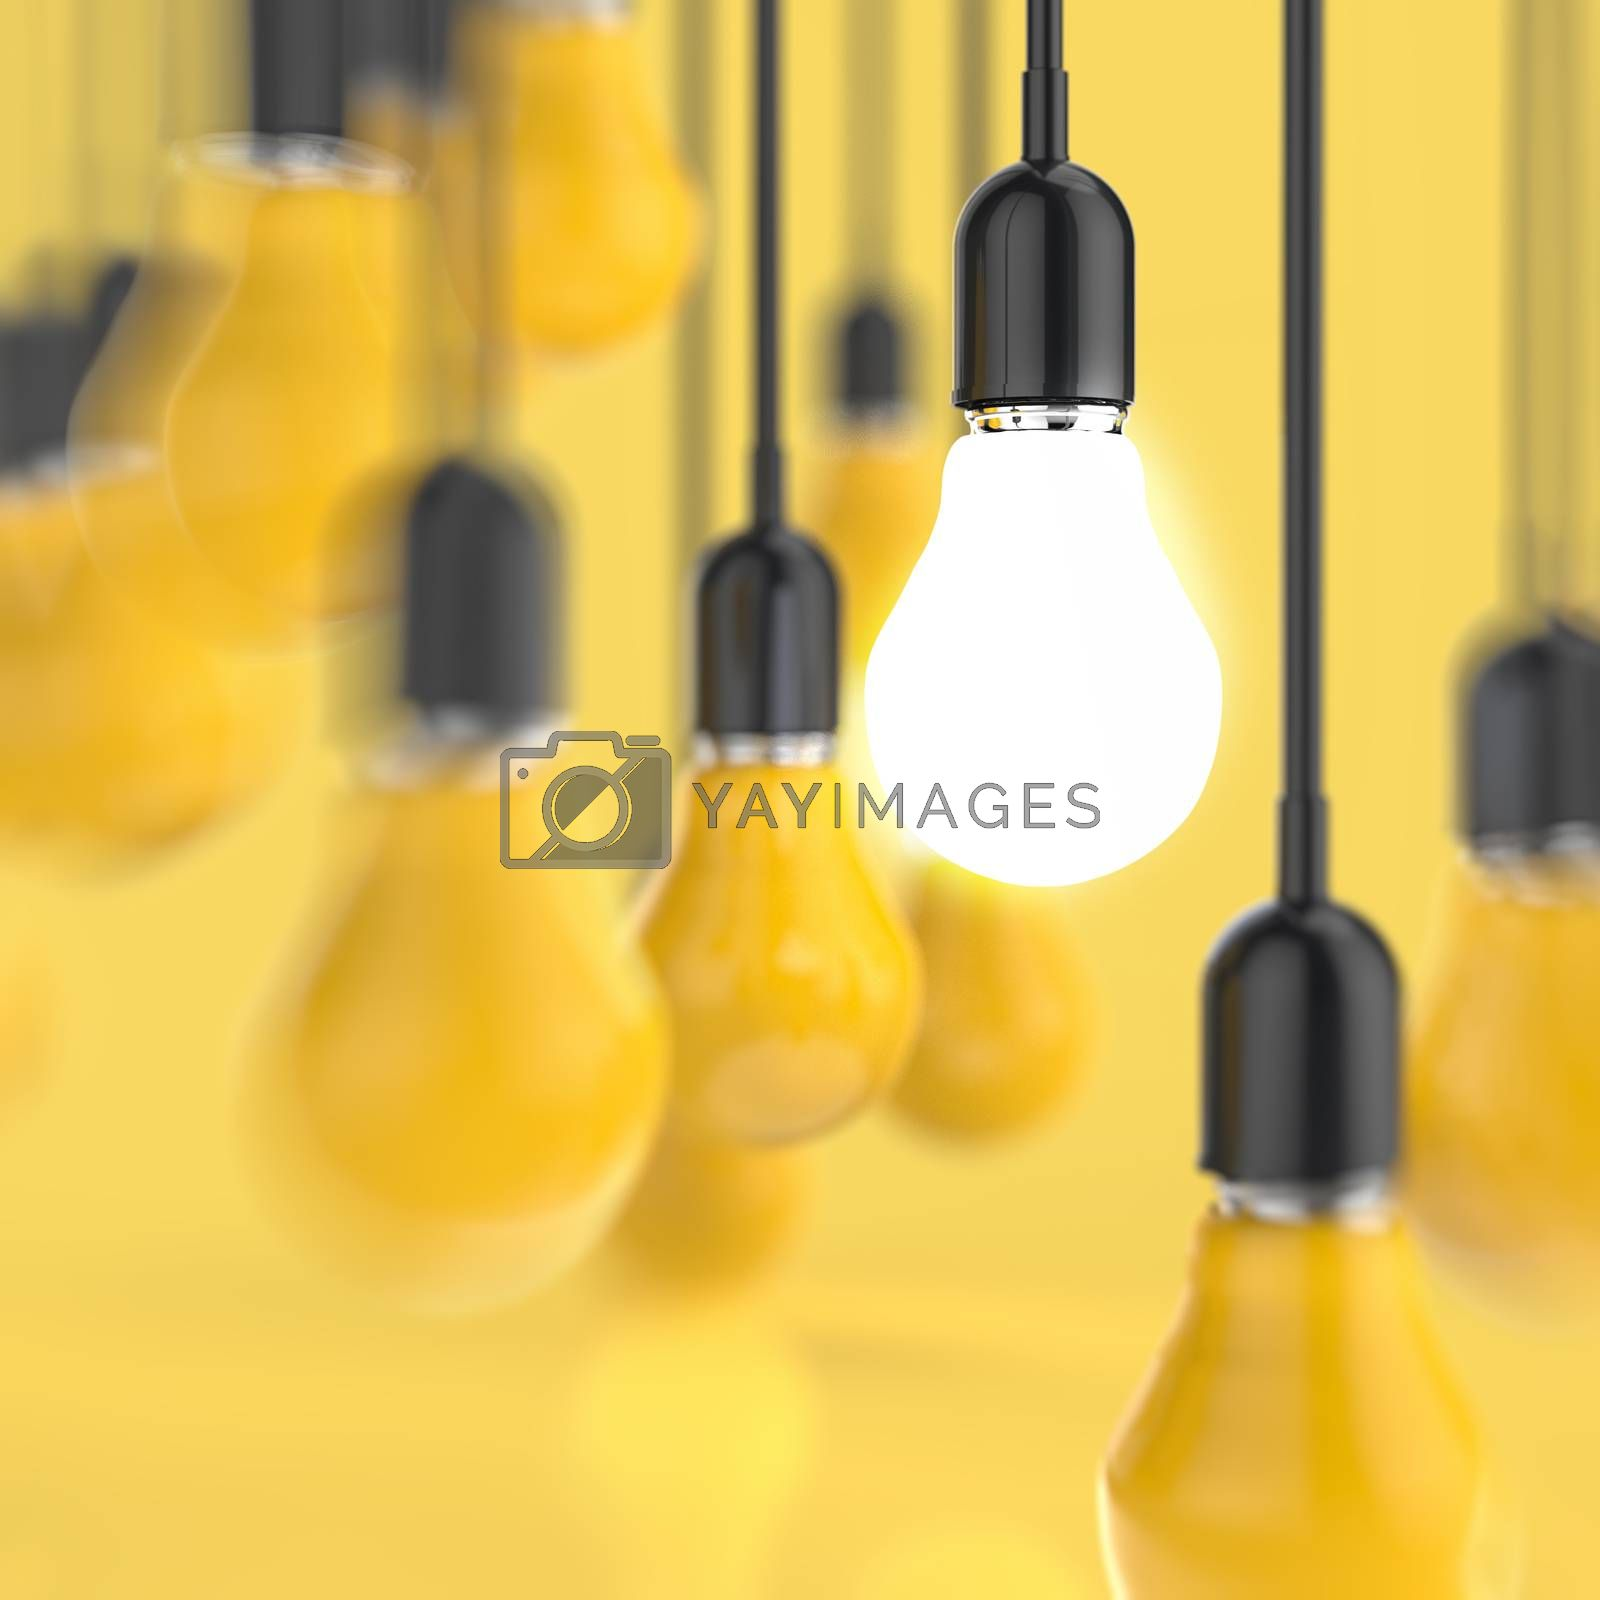 Royalty free image of creative idea and leadership concept  by everythingpossible